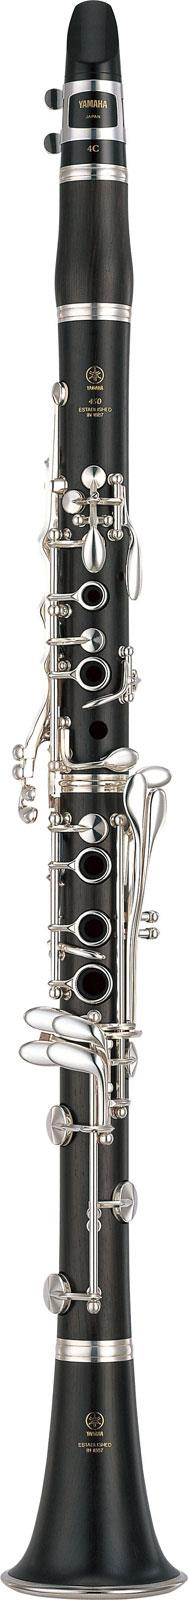 Yamaha ycl 450 series intermediate clarinet - Call of duty ghost map